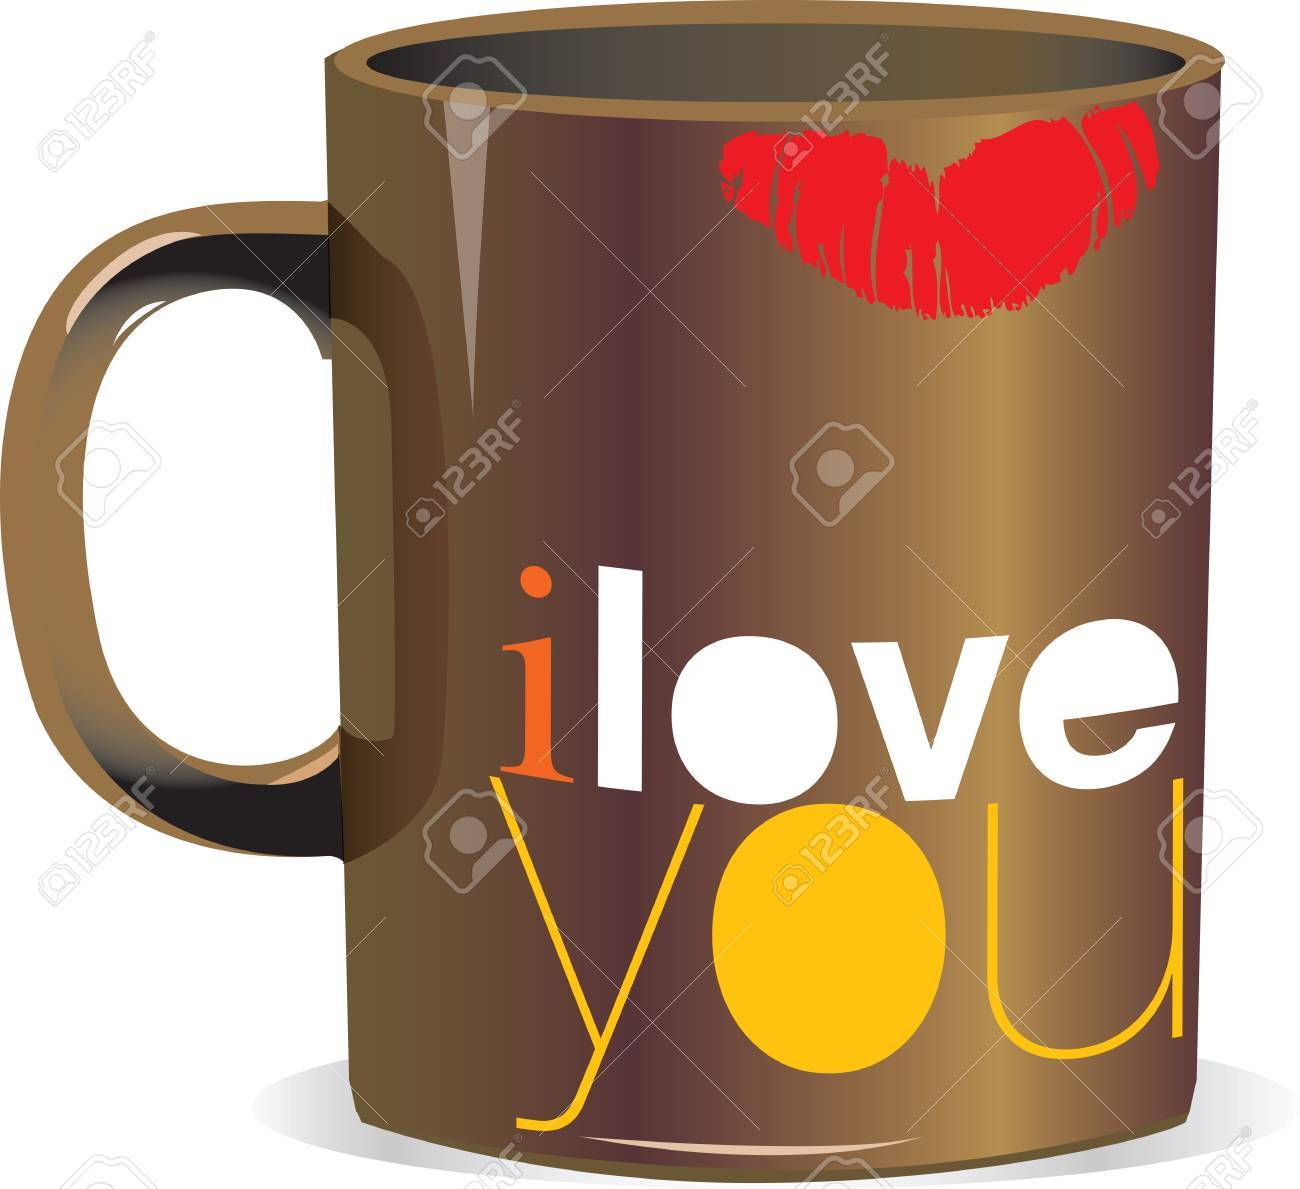 i love you Stock Vector - 10968768